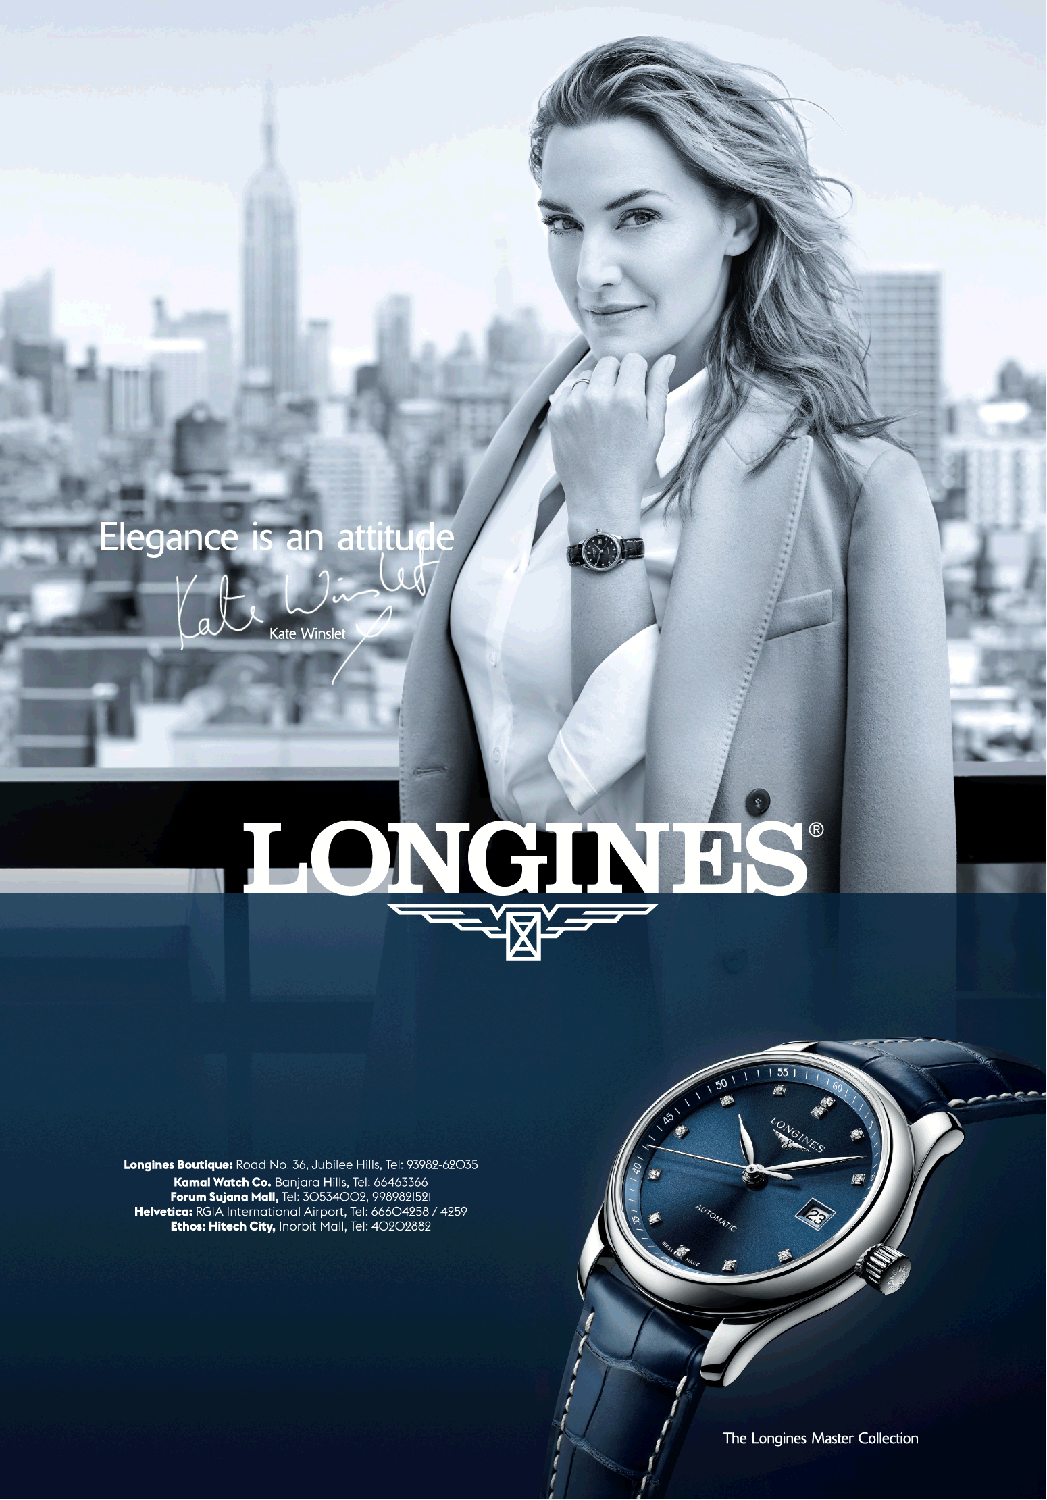 Longines Watches Elegance Is An Attitude Ad Times Of India Hyderabad Https Www Advertgallery Com Product Tag Watches Longines Watch Longines Kate Winslet